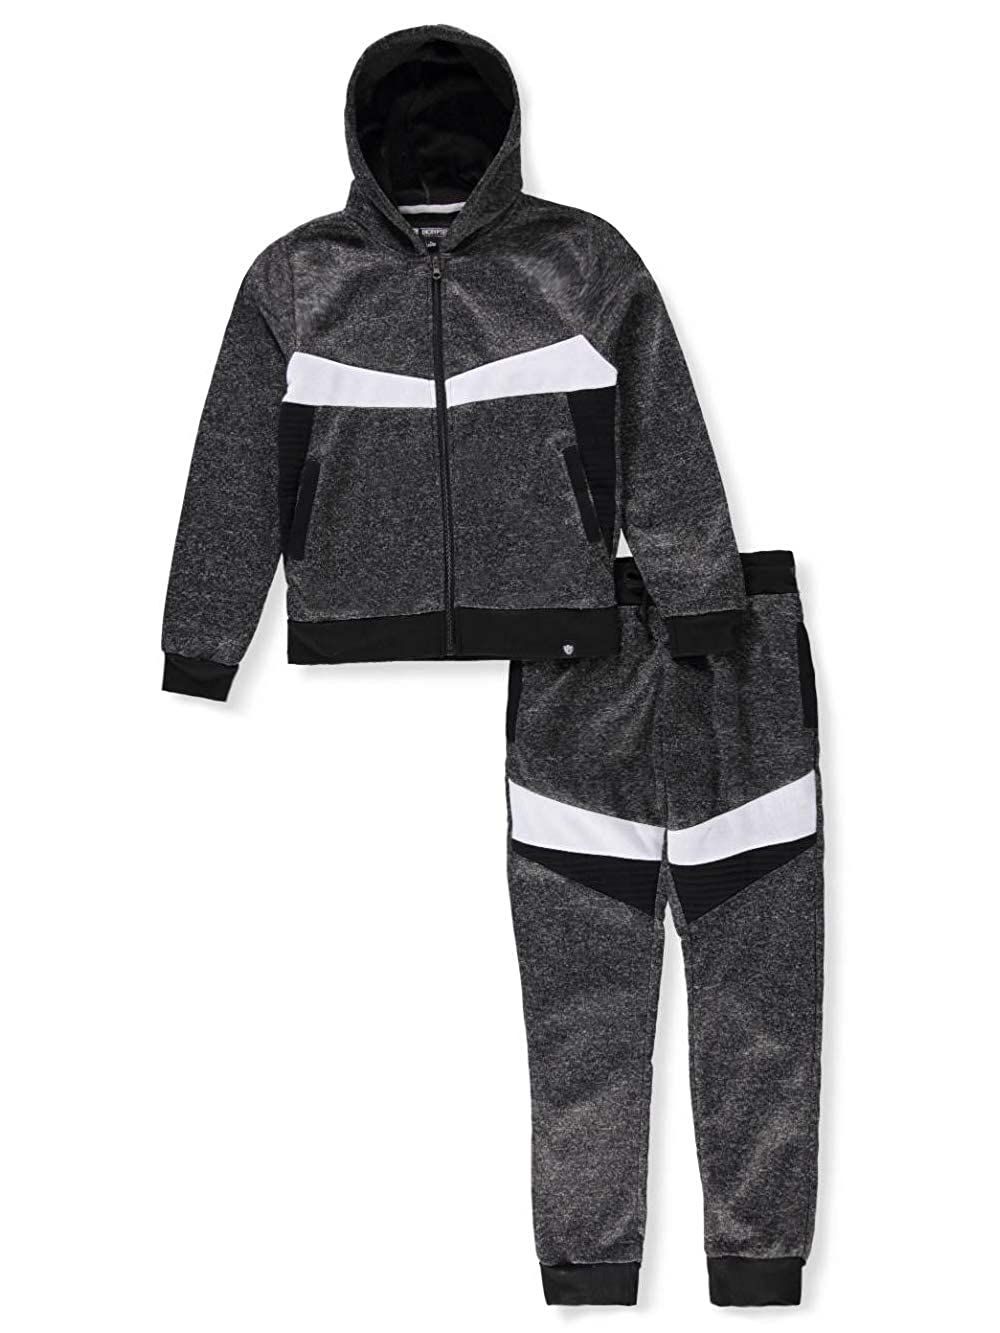 Encrypted Boys' 2-Piece Sweatsuit Pants Set